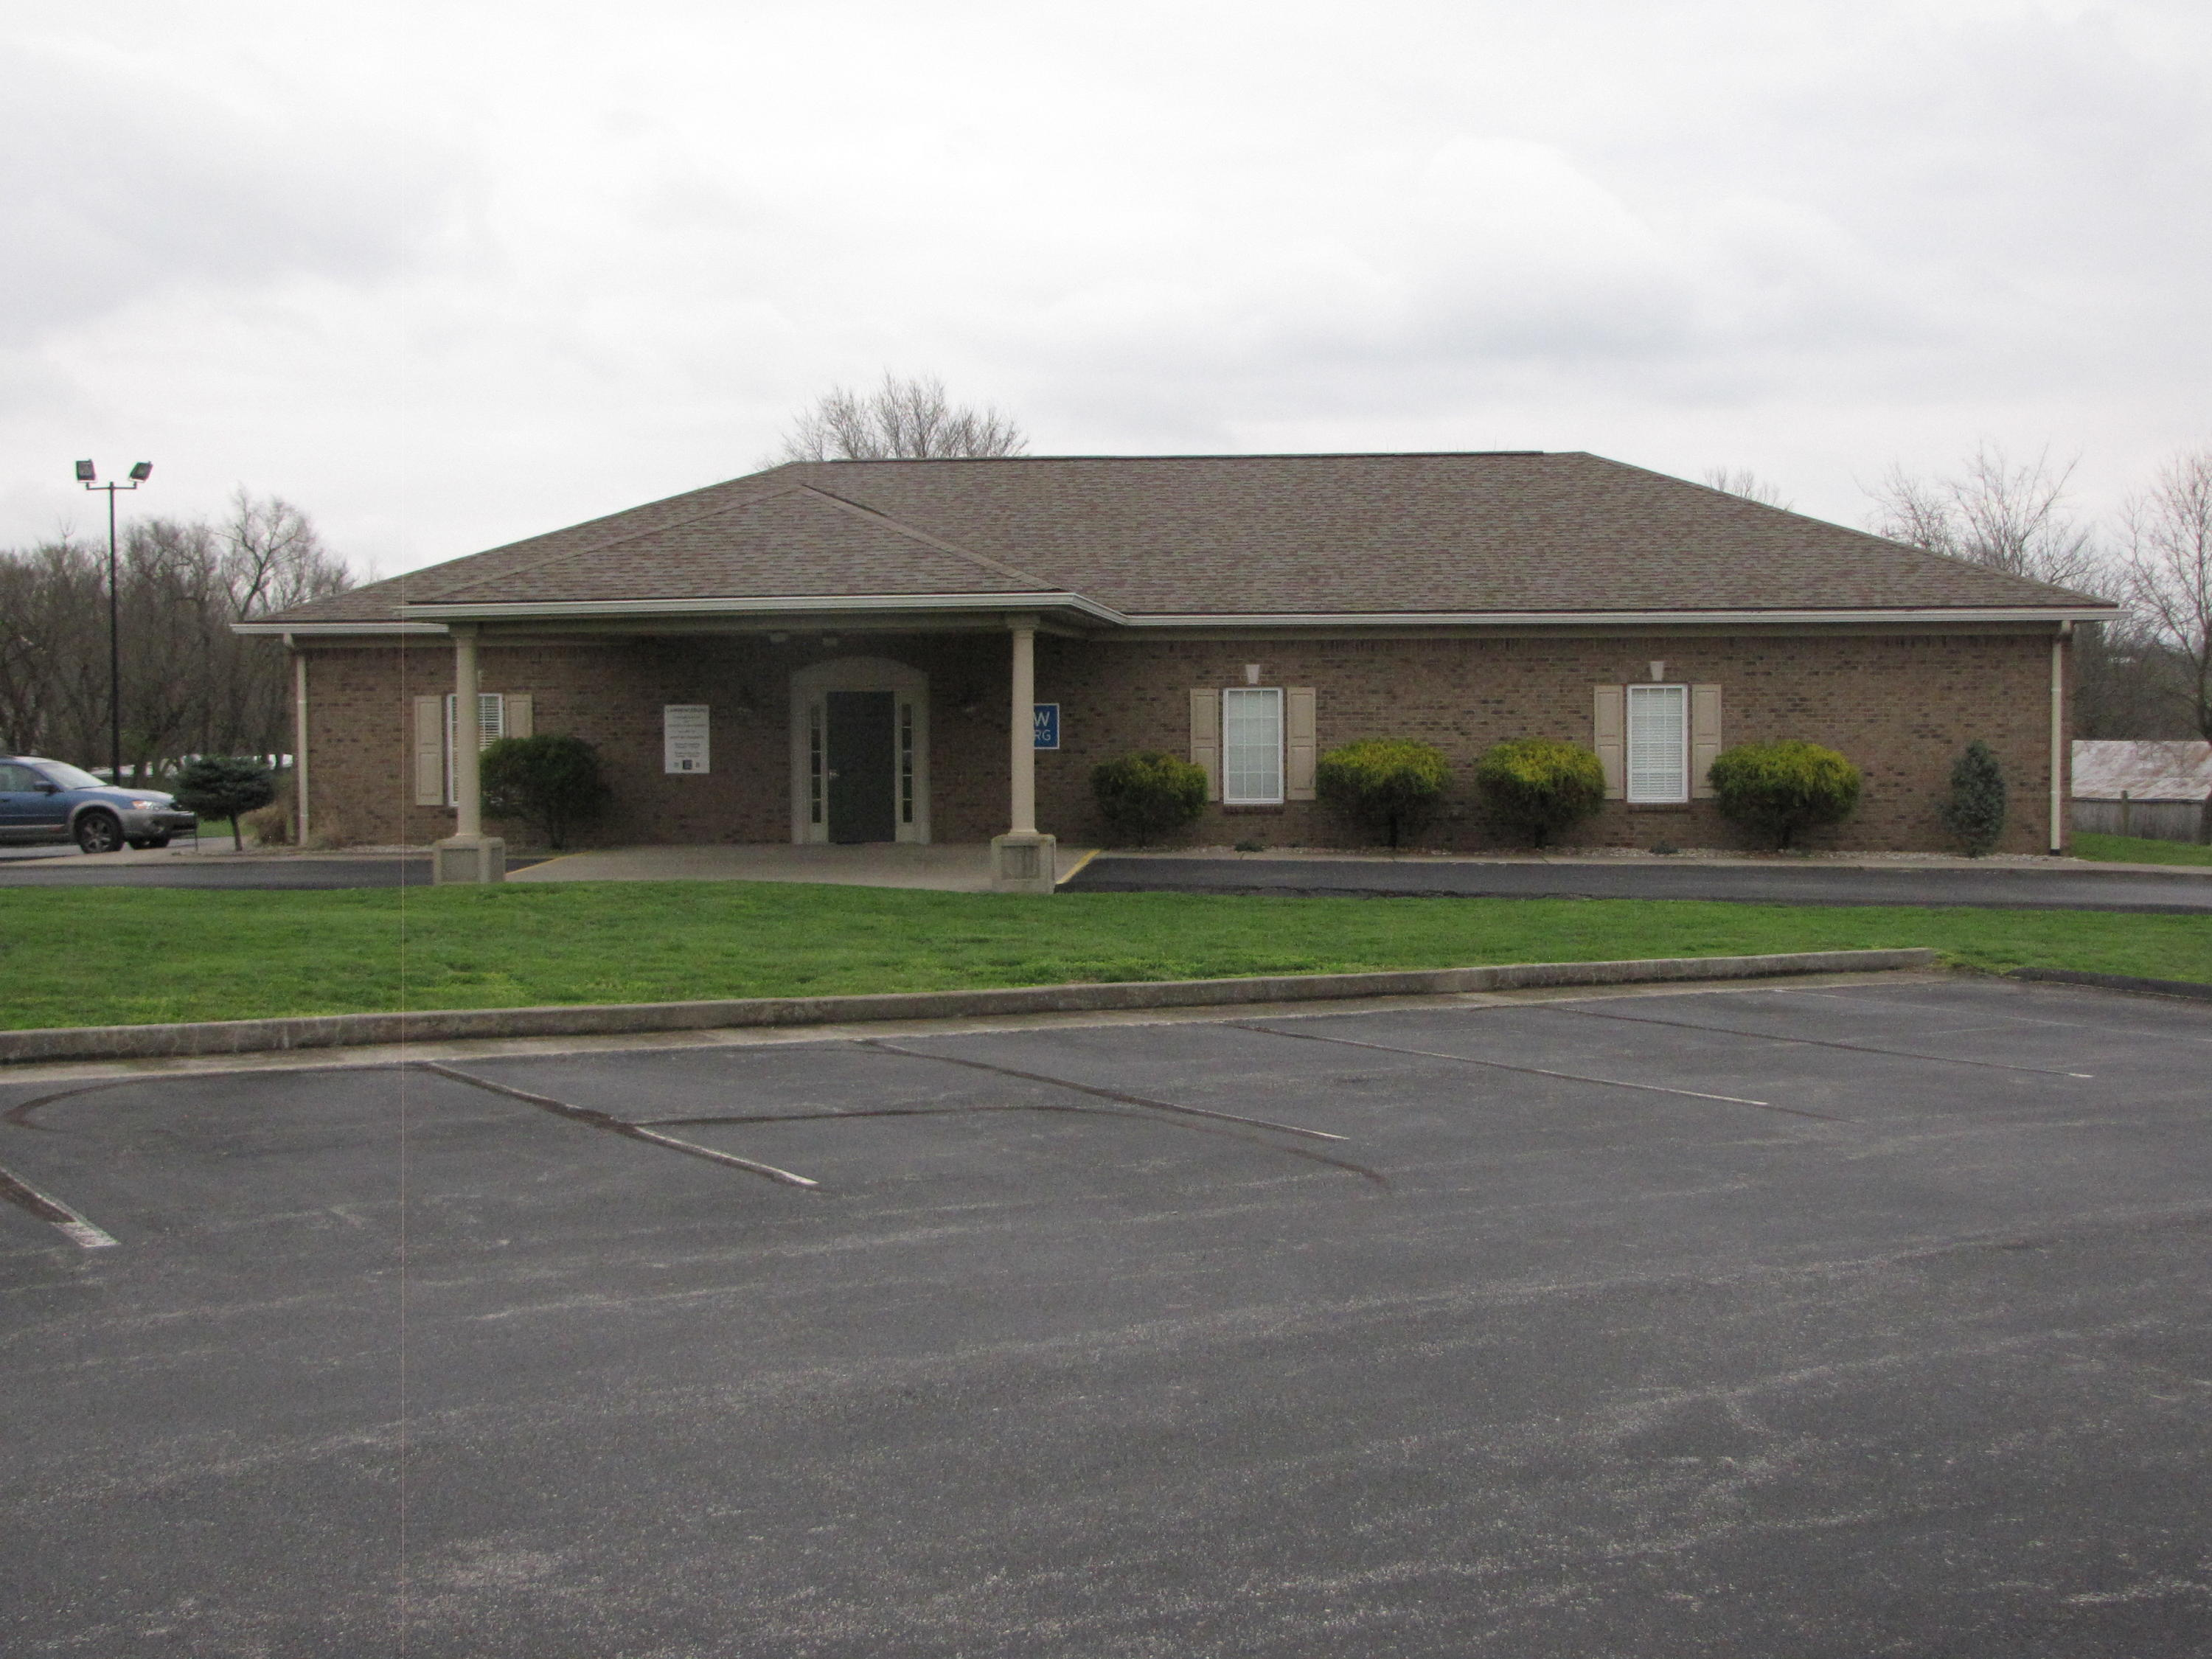 1388 Bypass North, Lawrenceburg, KY 40342